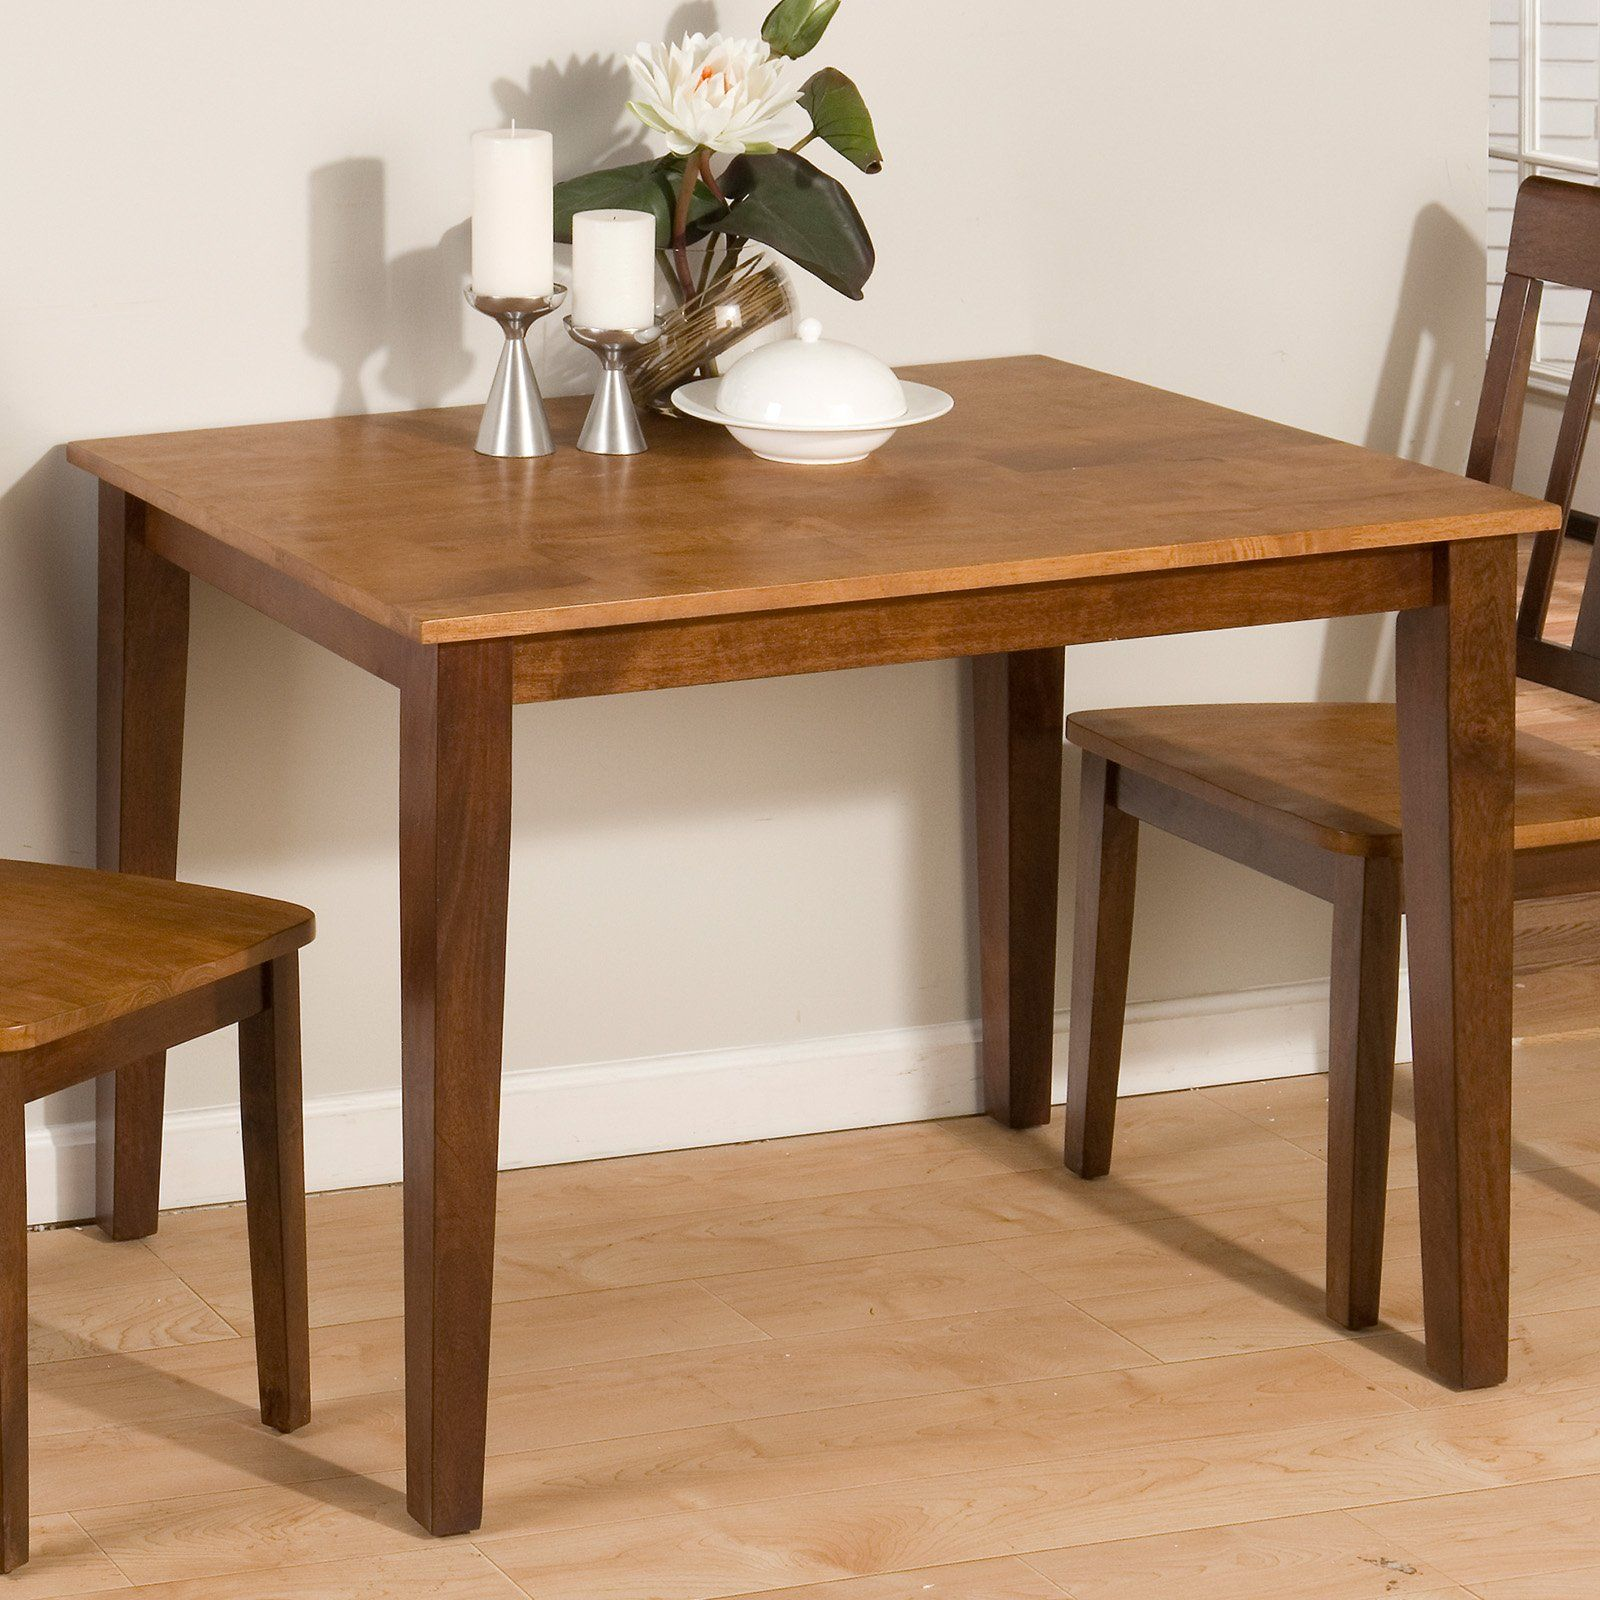 Have to have it. Jofran Kura Canyon Small Rectangular Dining Table - $191.95 @hayneedle.com Dimensions: 42L x 30W x 30H inches